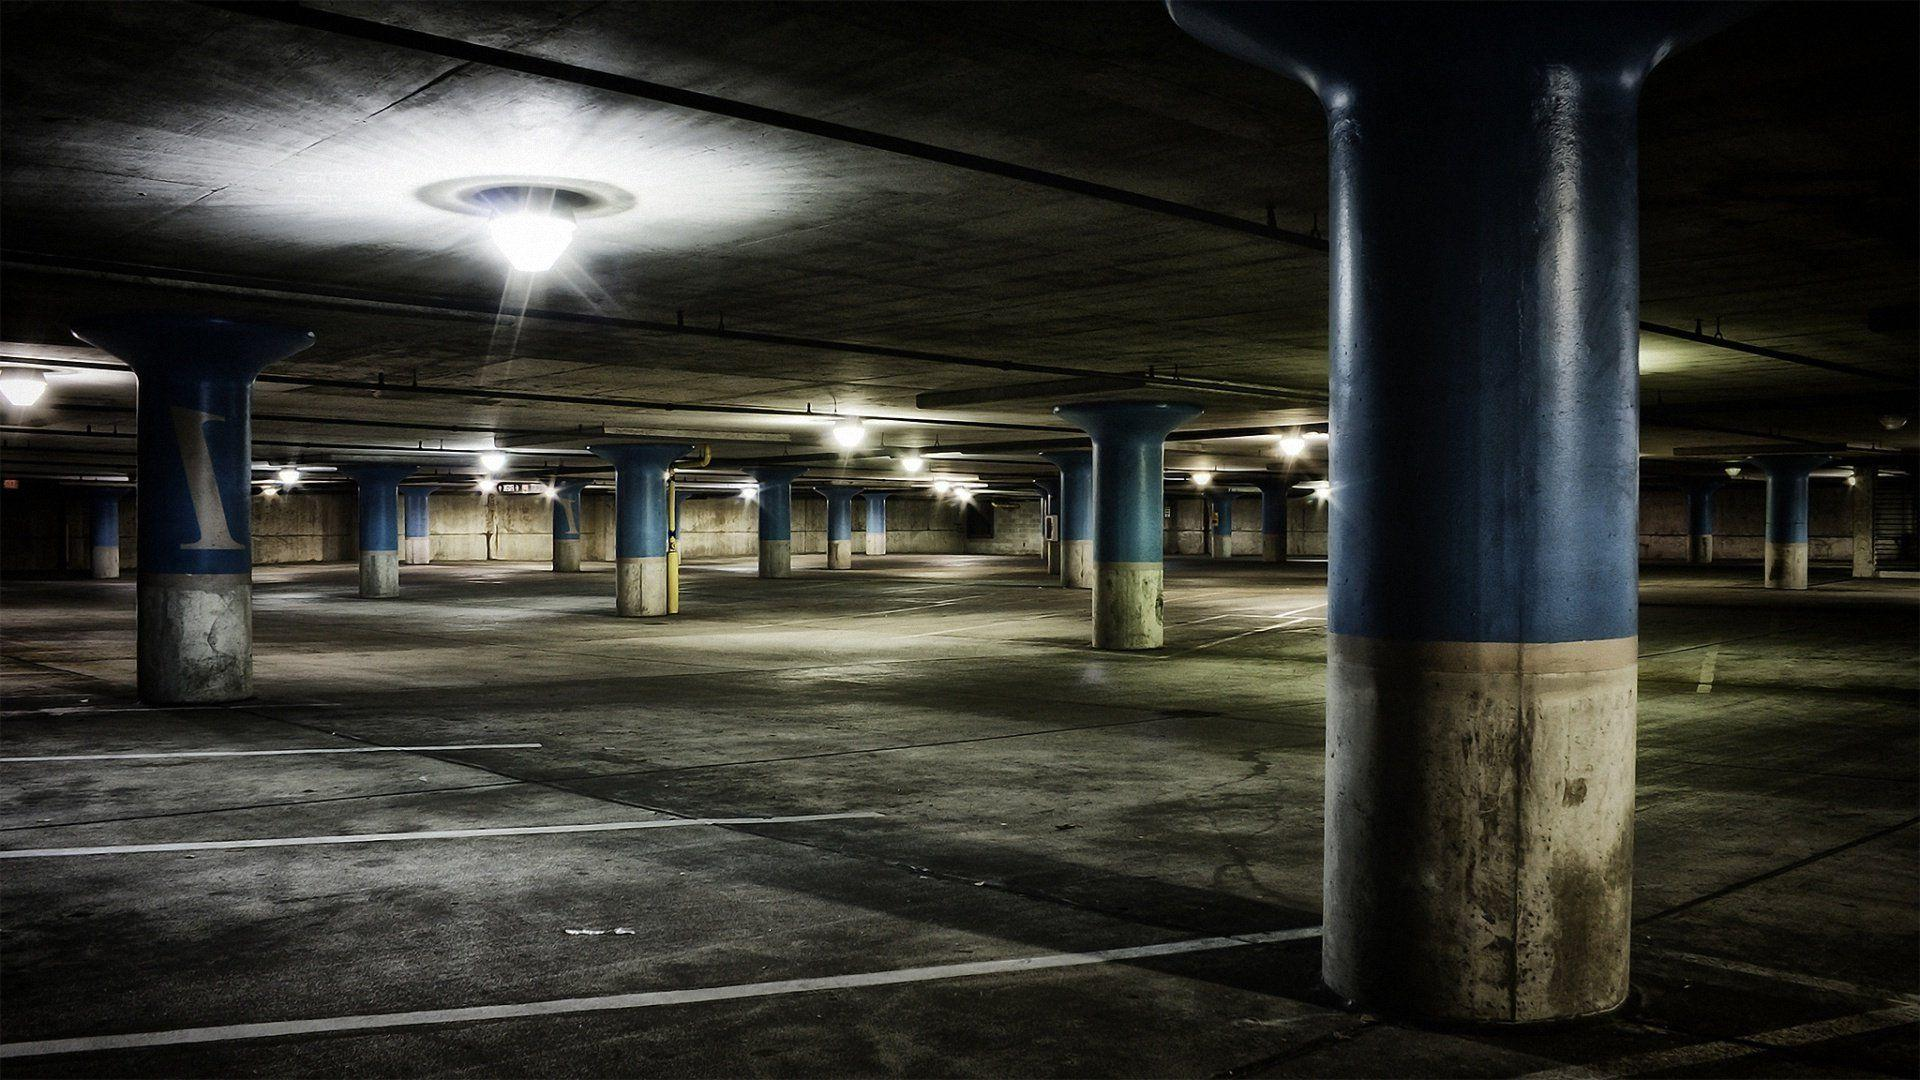 Car Parked At Night Wallpaper  Parking Wallpapers Wallpaper Cave